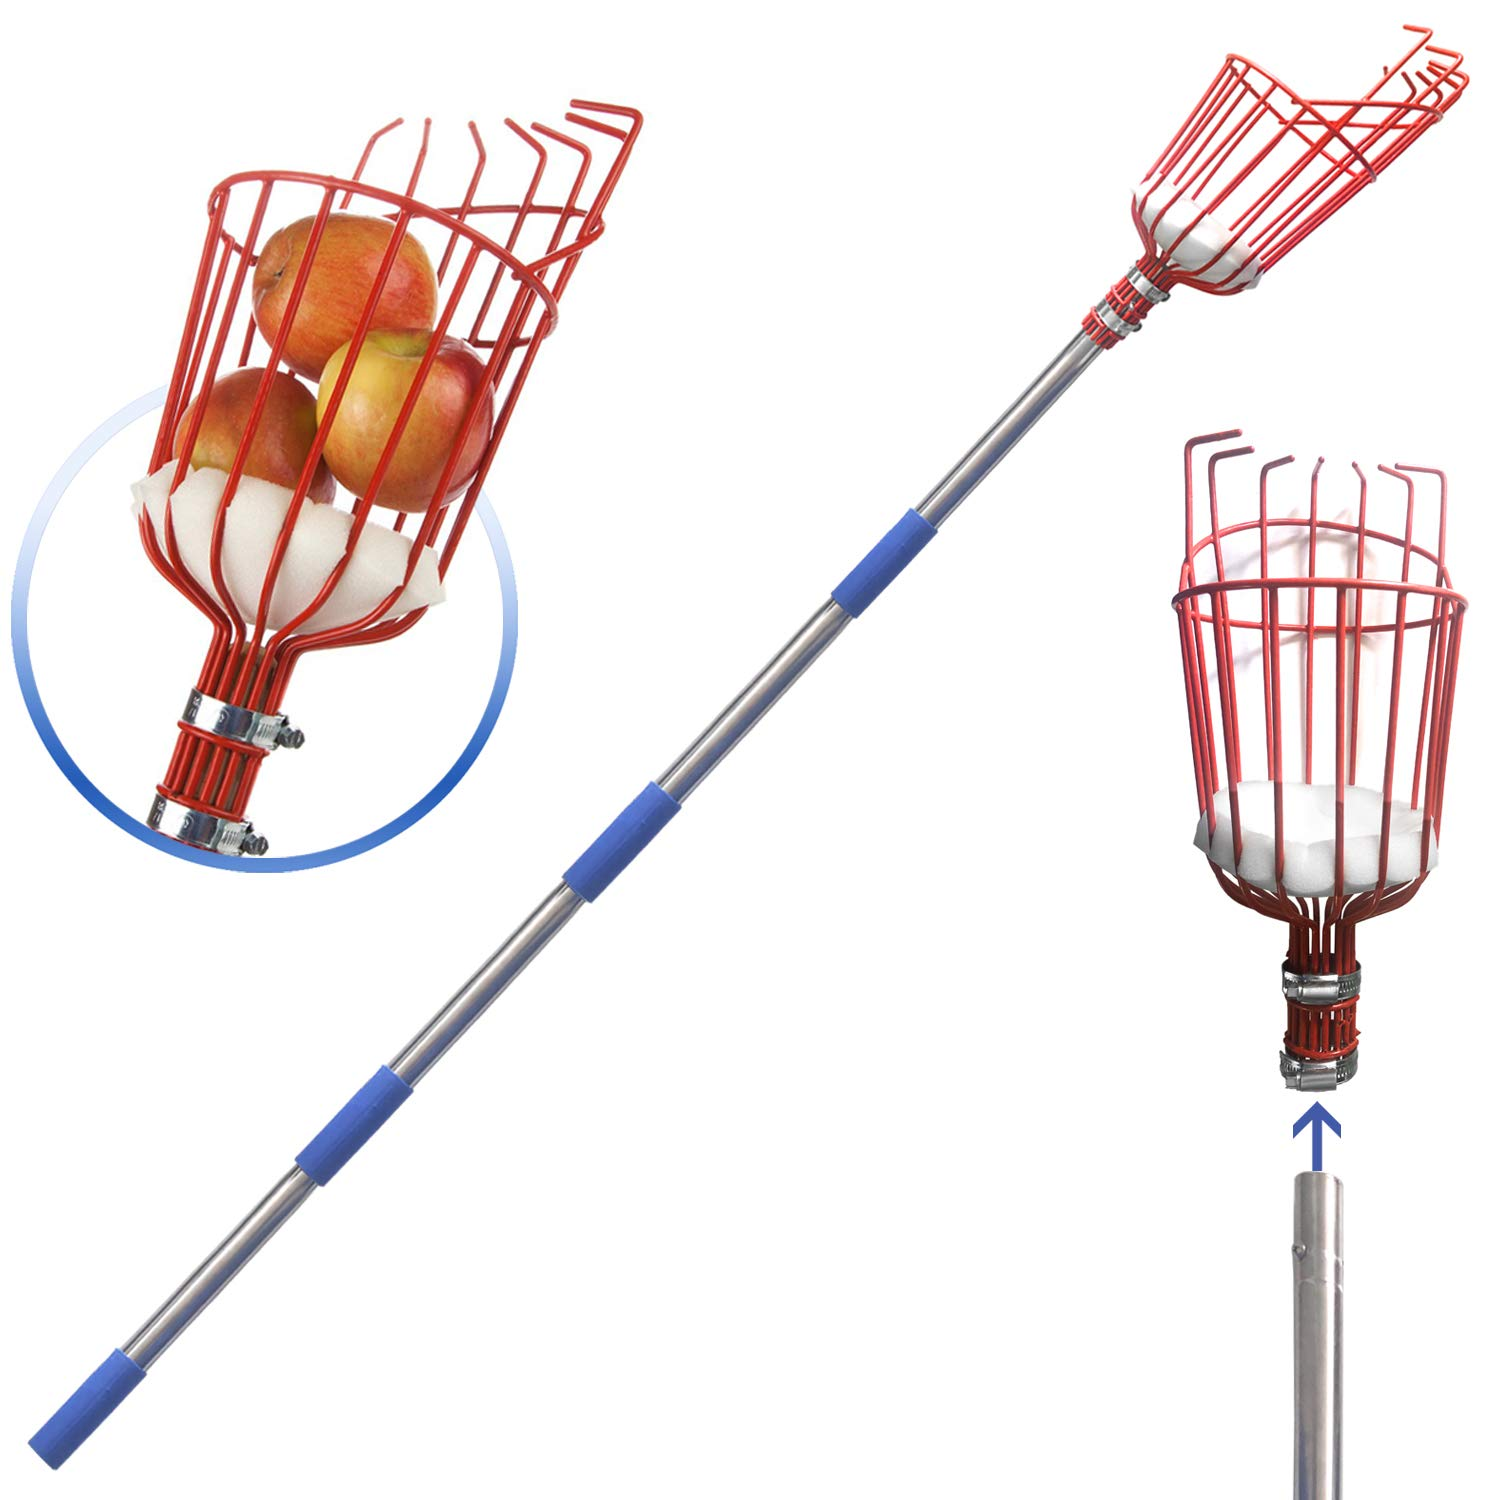 COCONUT Fruit Picker Tool, Fruit Picker with Basket and Pole,Easy to Assemble & Use Fruits Catcher Tree Picker for Getting Fruits (8ft) by COCONUT